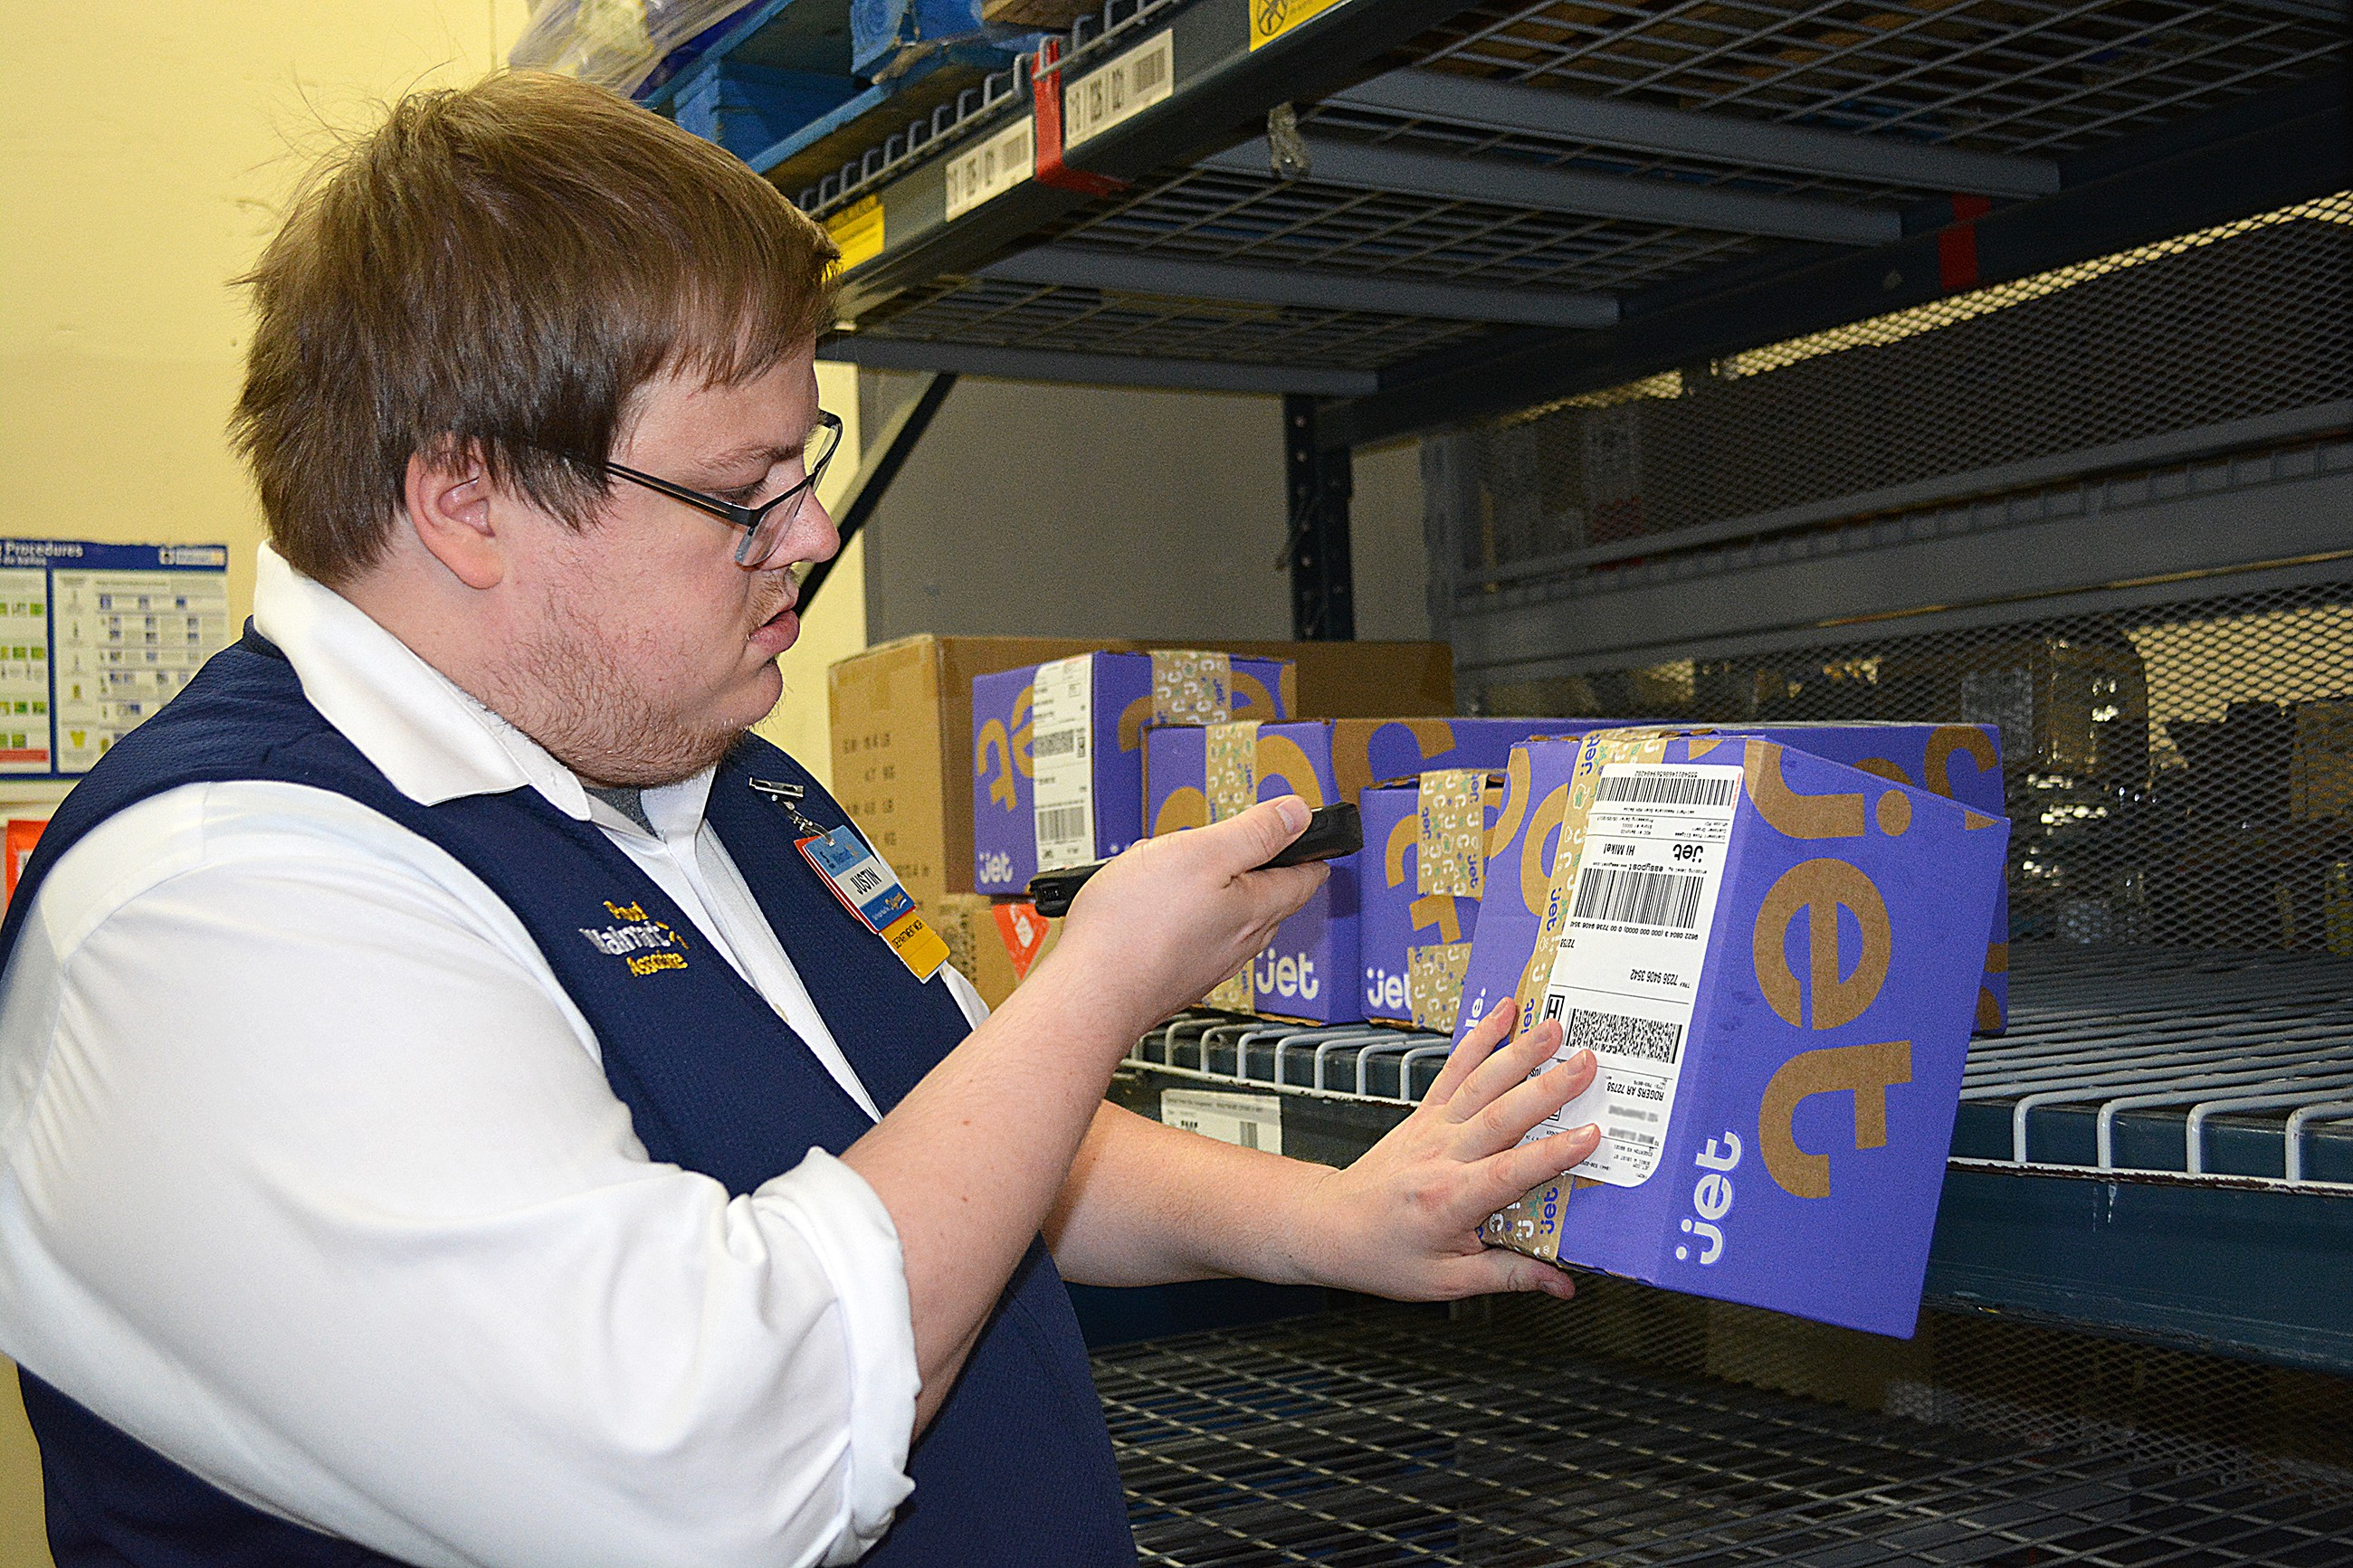 Associate delivery in the backroom